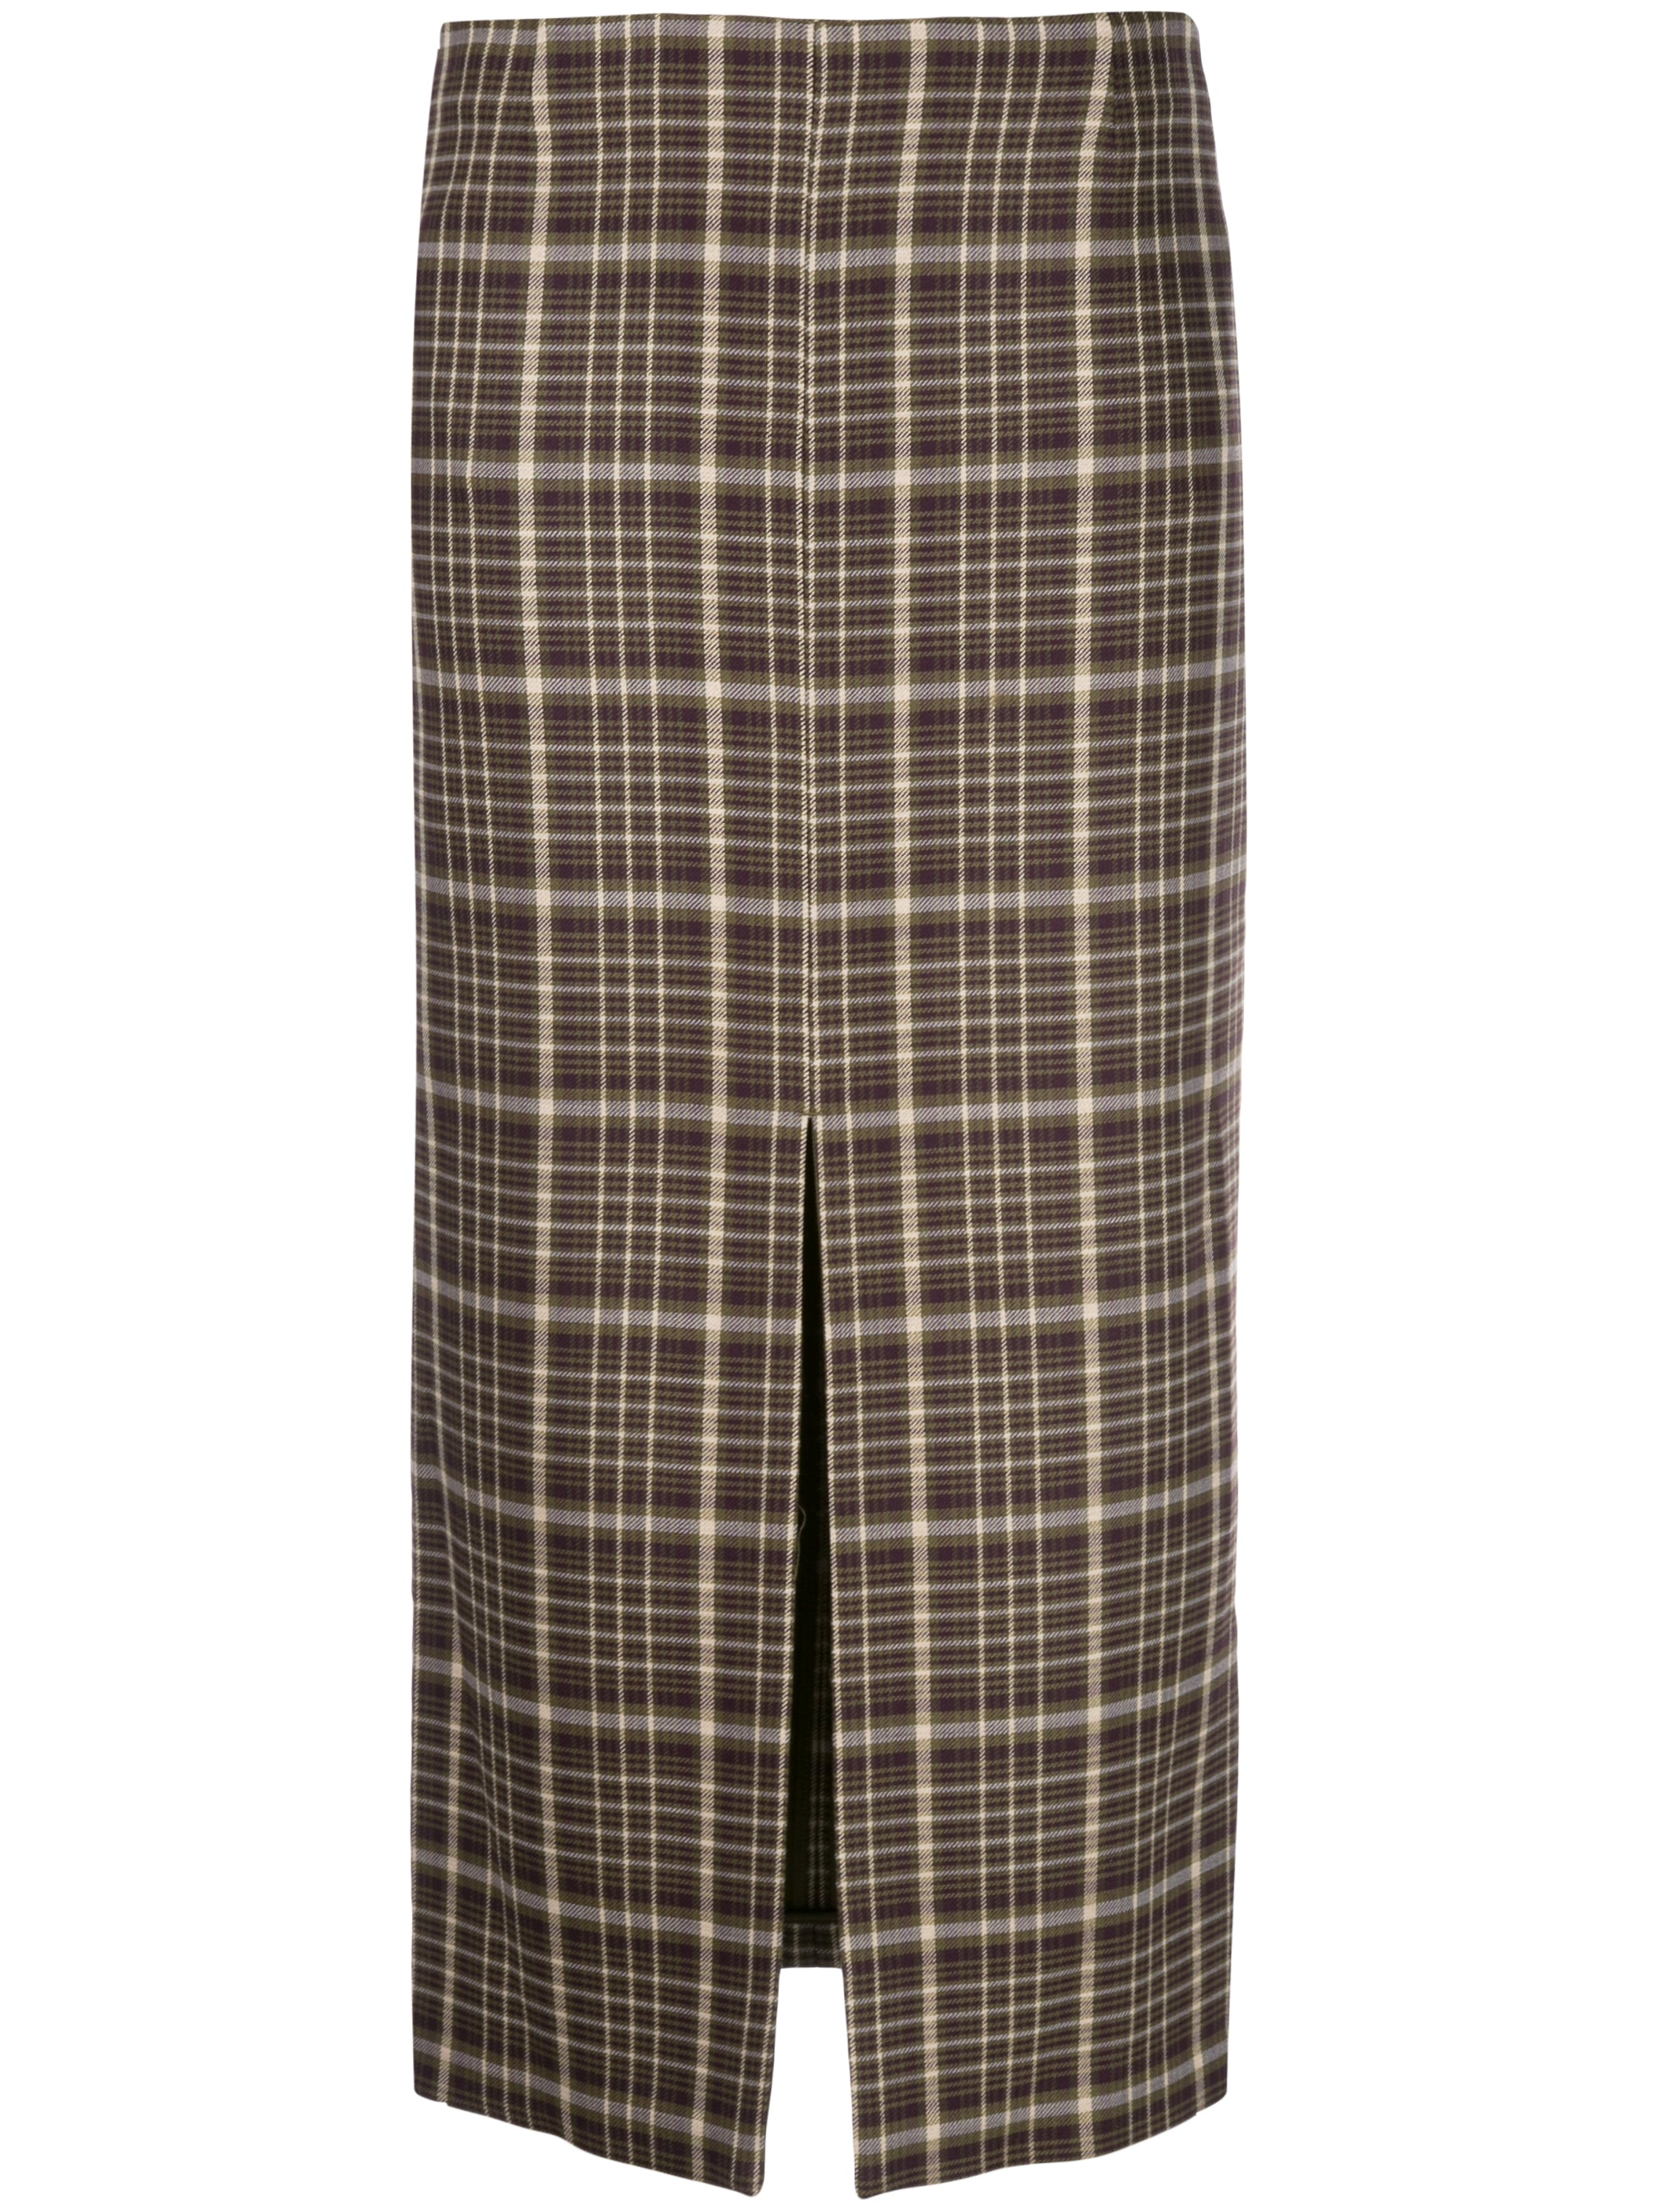 DOUBLE FACE WOOL PENCIL SKIRT